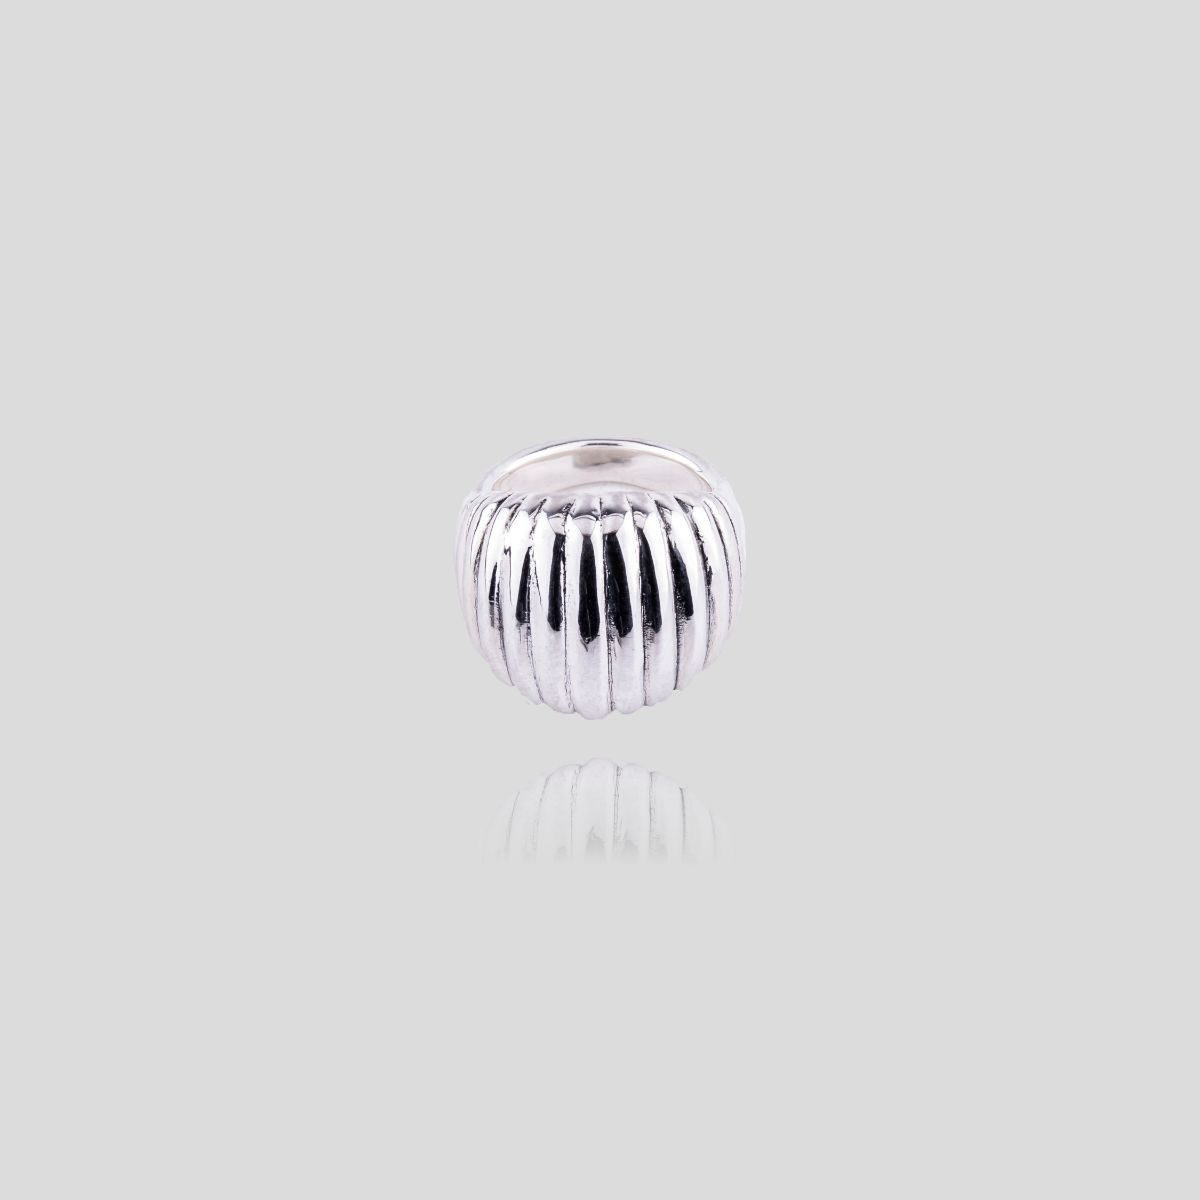 Aquario ring in wide, curved sterling silver with vertical lines